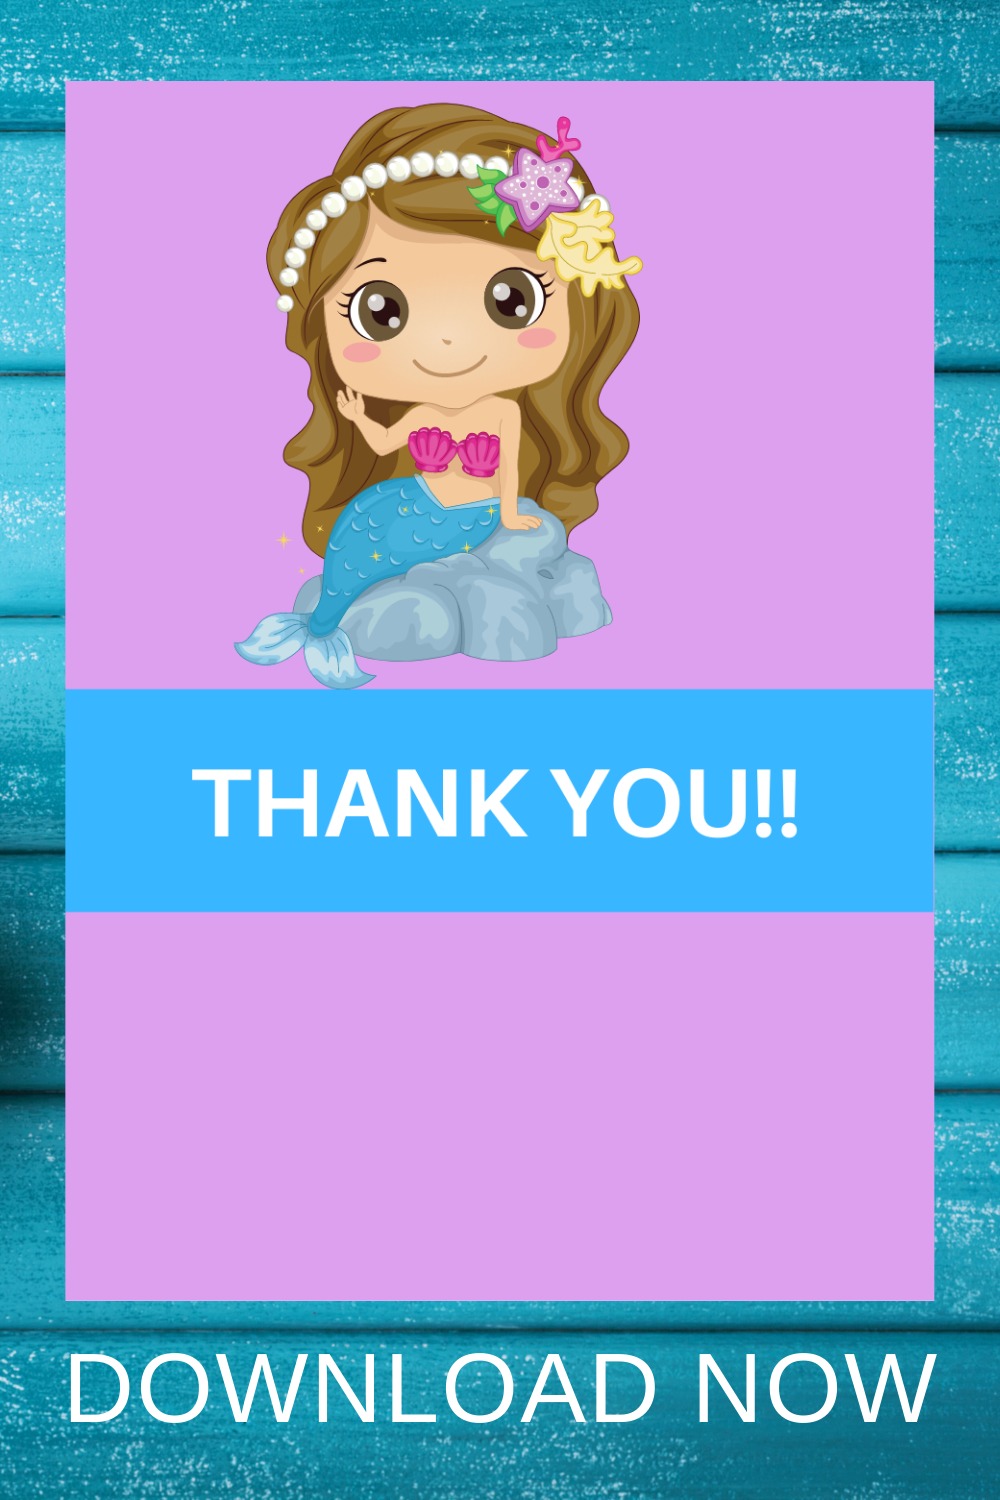 free download: mermaid thank you card for party